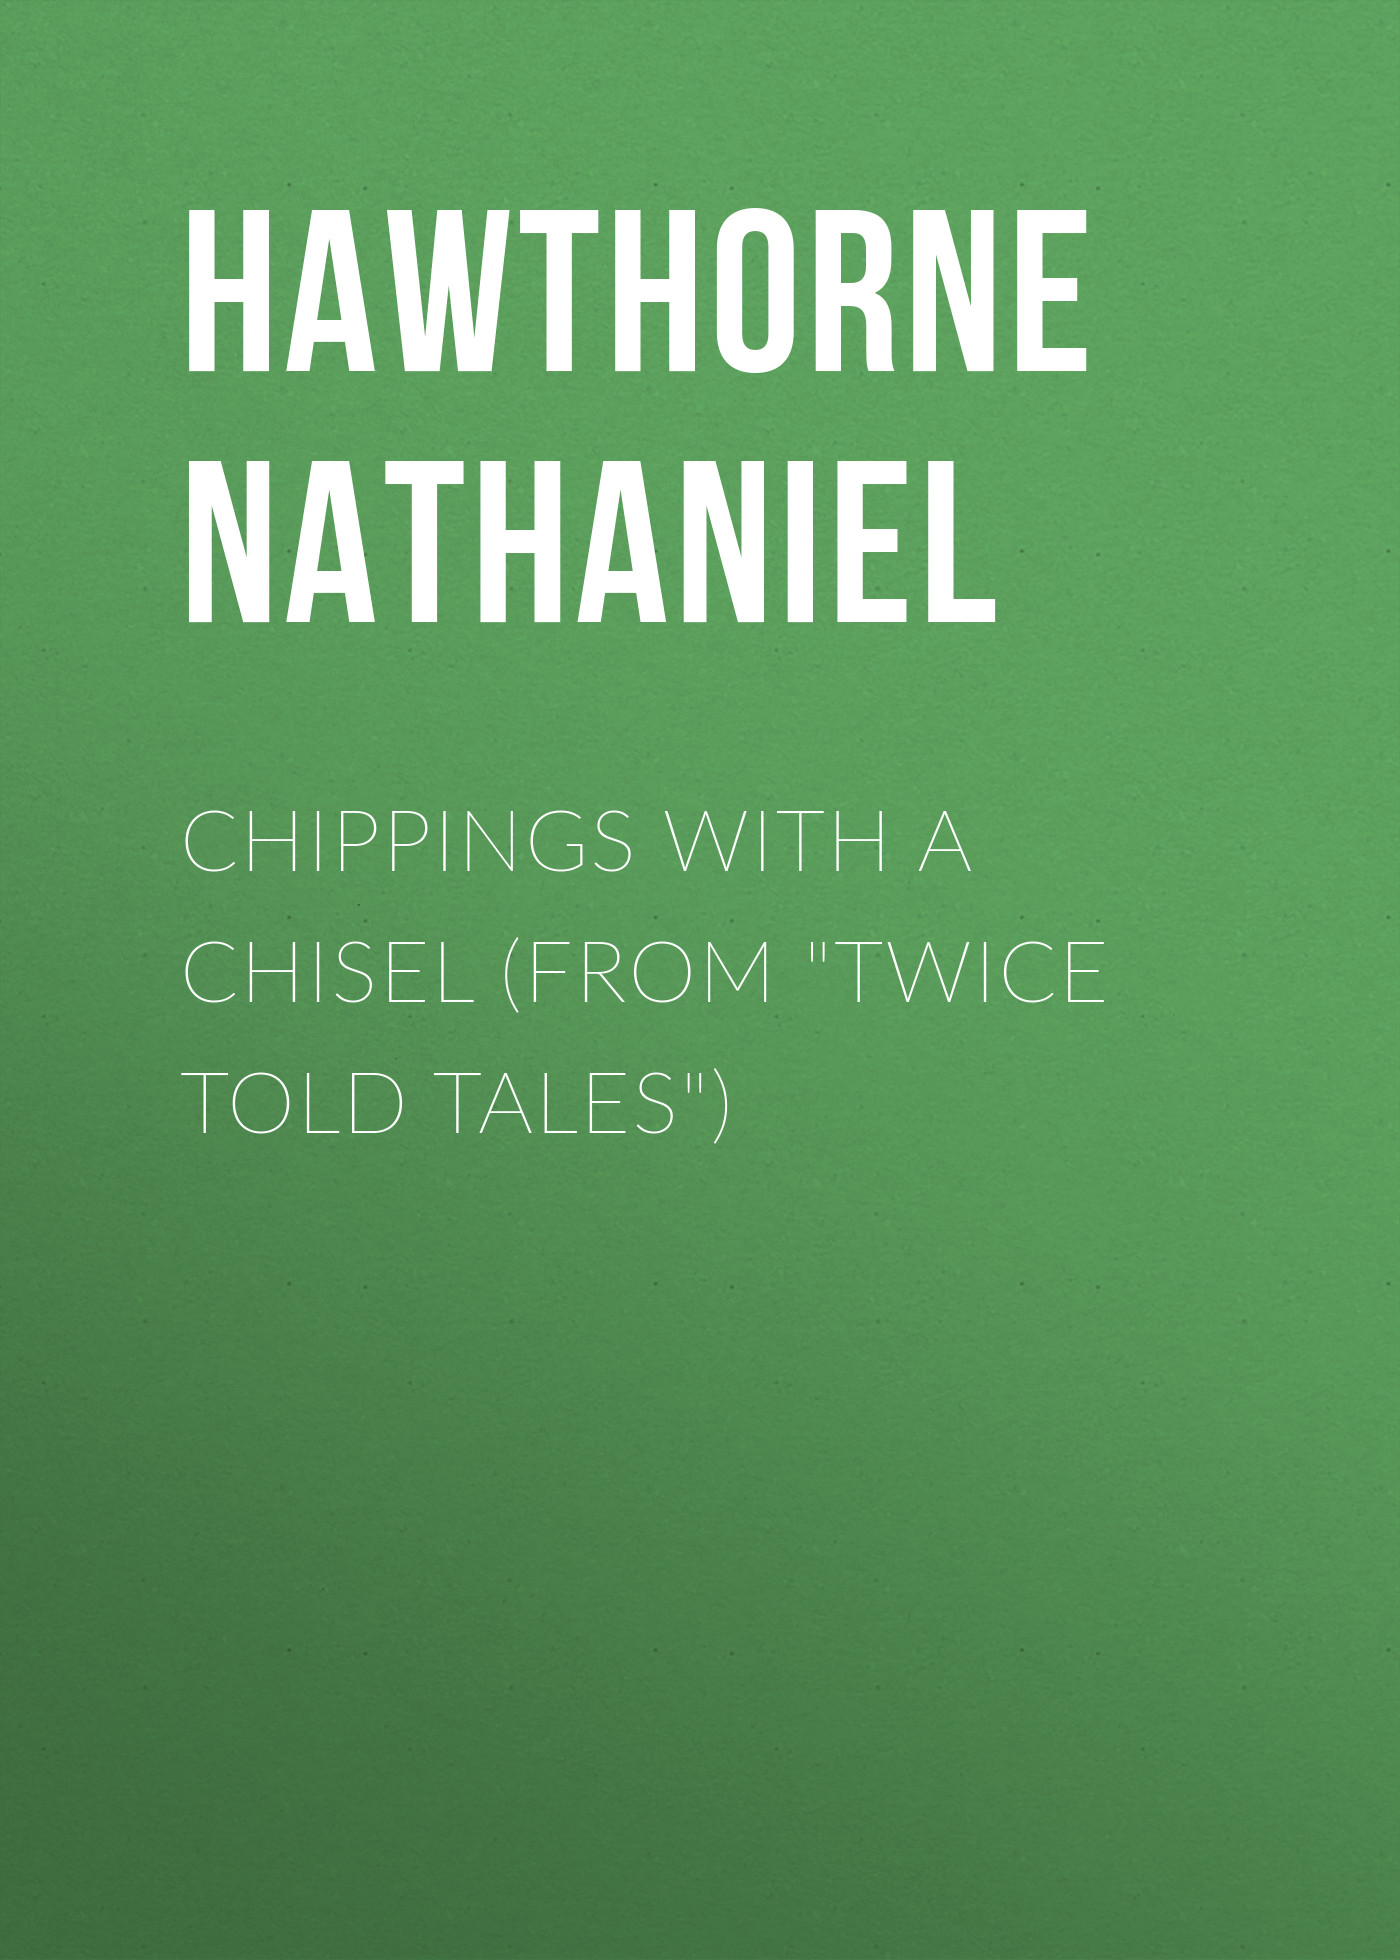 Hawthorne Nathaniel Chippings with a Chisel (From Twice Told Tales) hawthorne n twice told tales isbn 9785521070510